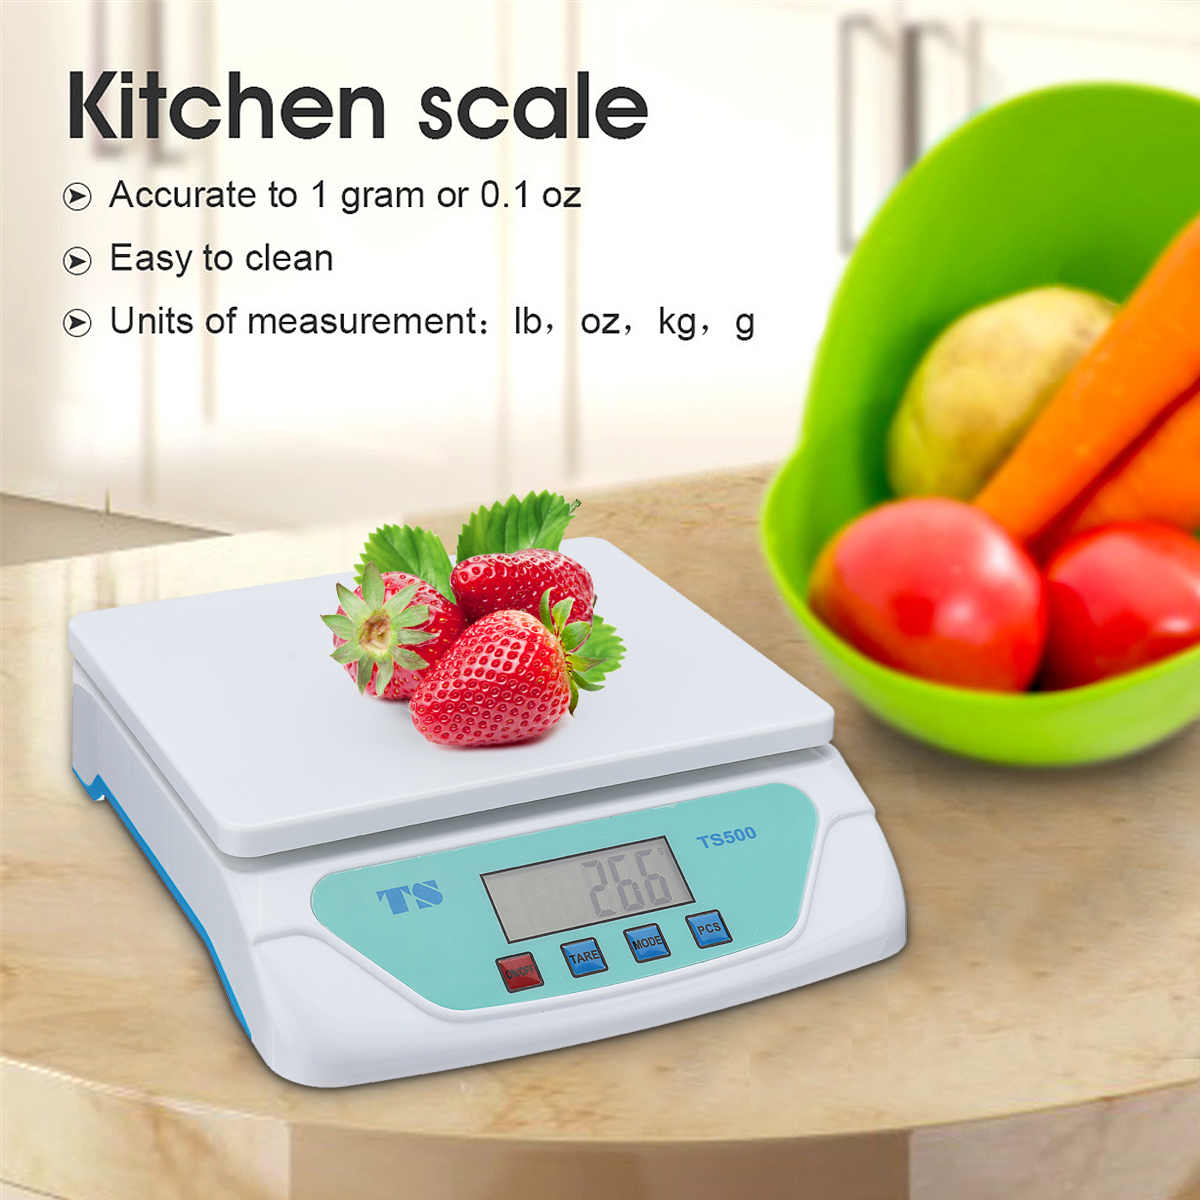 30kg LCD Displ electronic scales Weighing Kitchen Scales Grams Balance universal for Home kitchen 30kg Electronic Balance Weig image